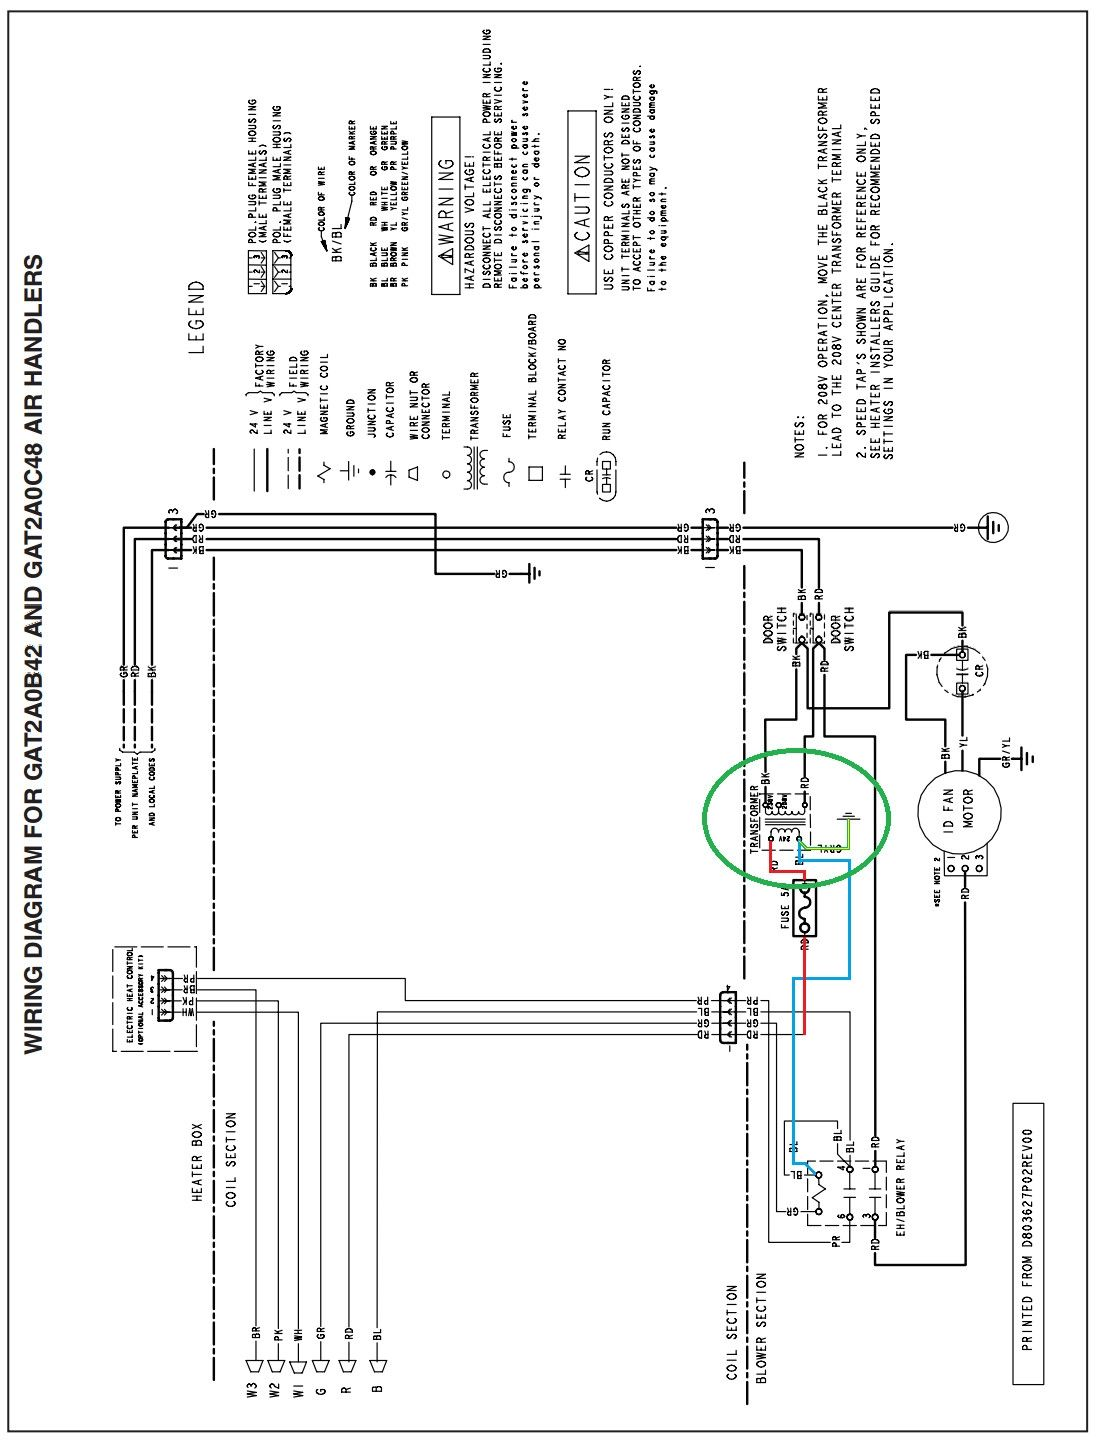 Trane Furnace Schematics - Caterpillar Wiring Diagrams For Part 197 7348  for Wiring Diagram Schematics